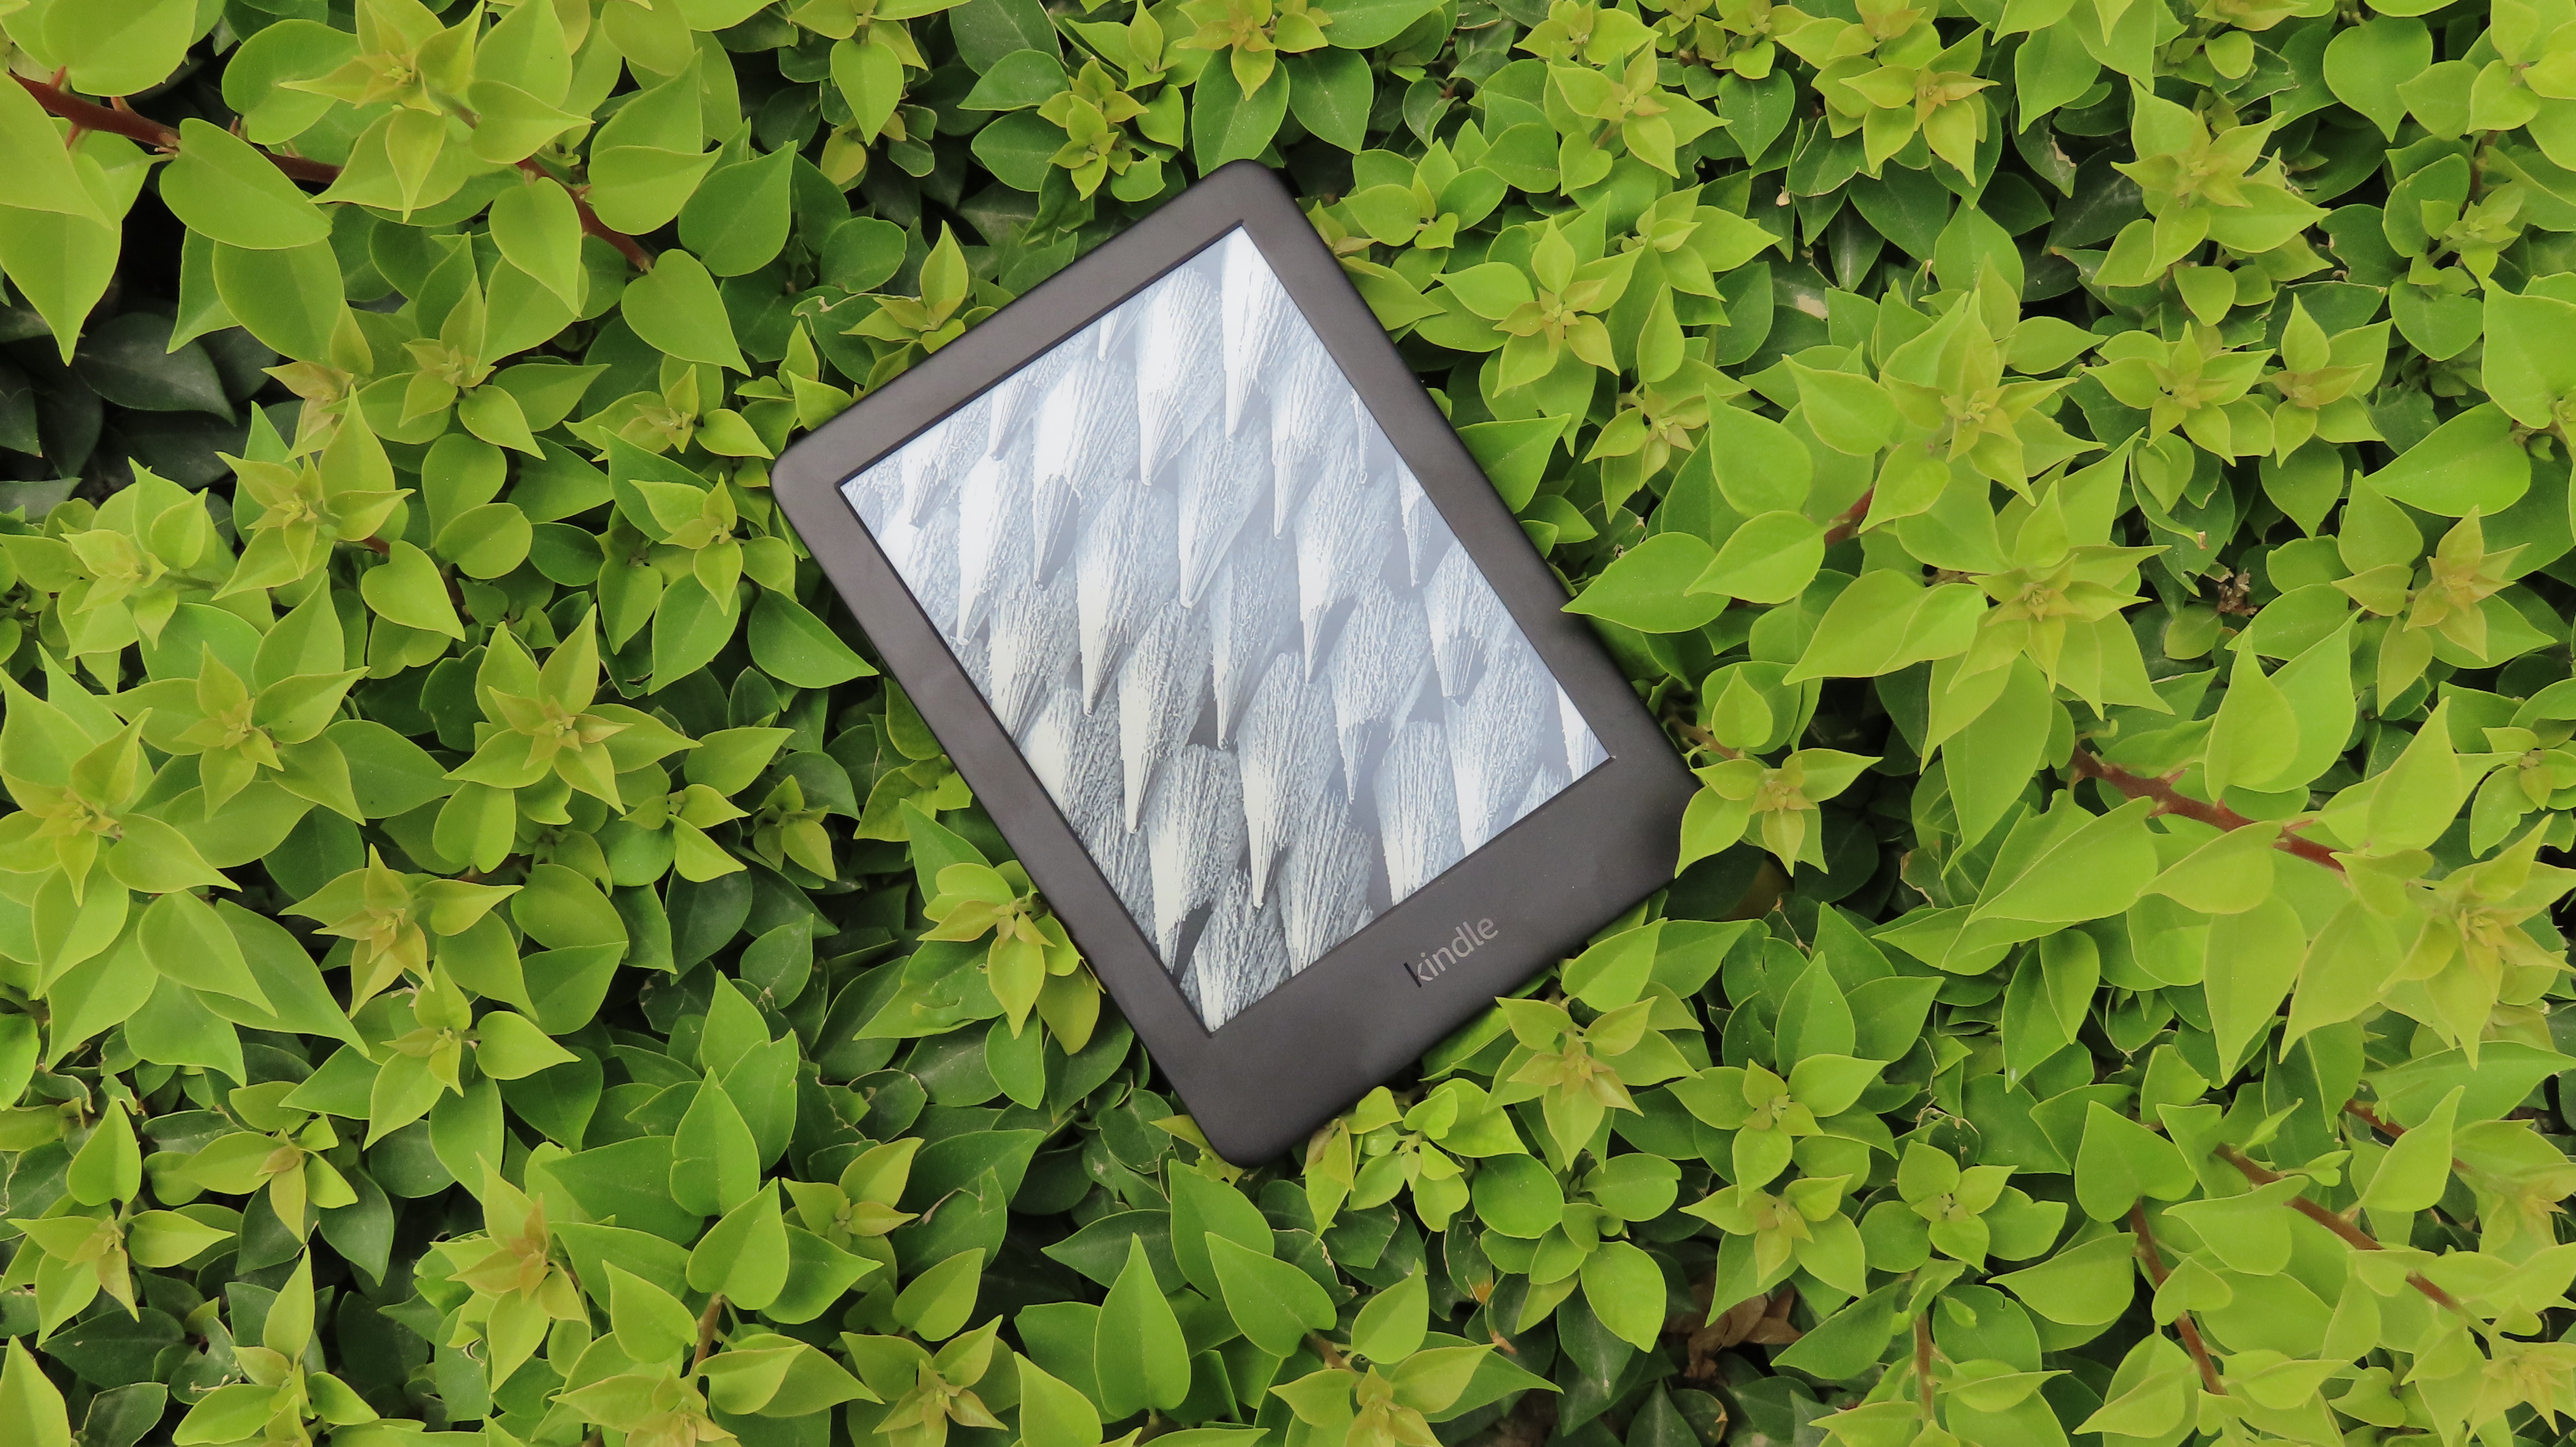 Amazon Kindle vs Kindle Paperwhite: is it worth spending more